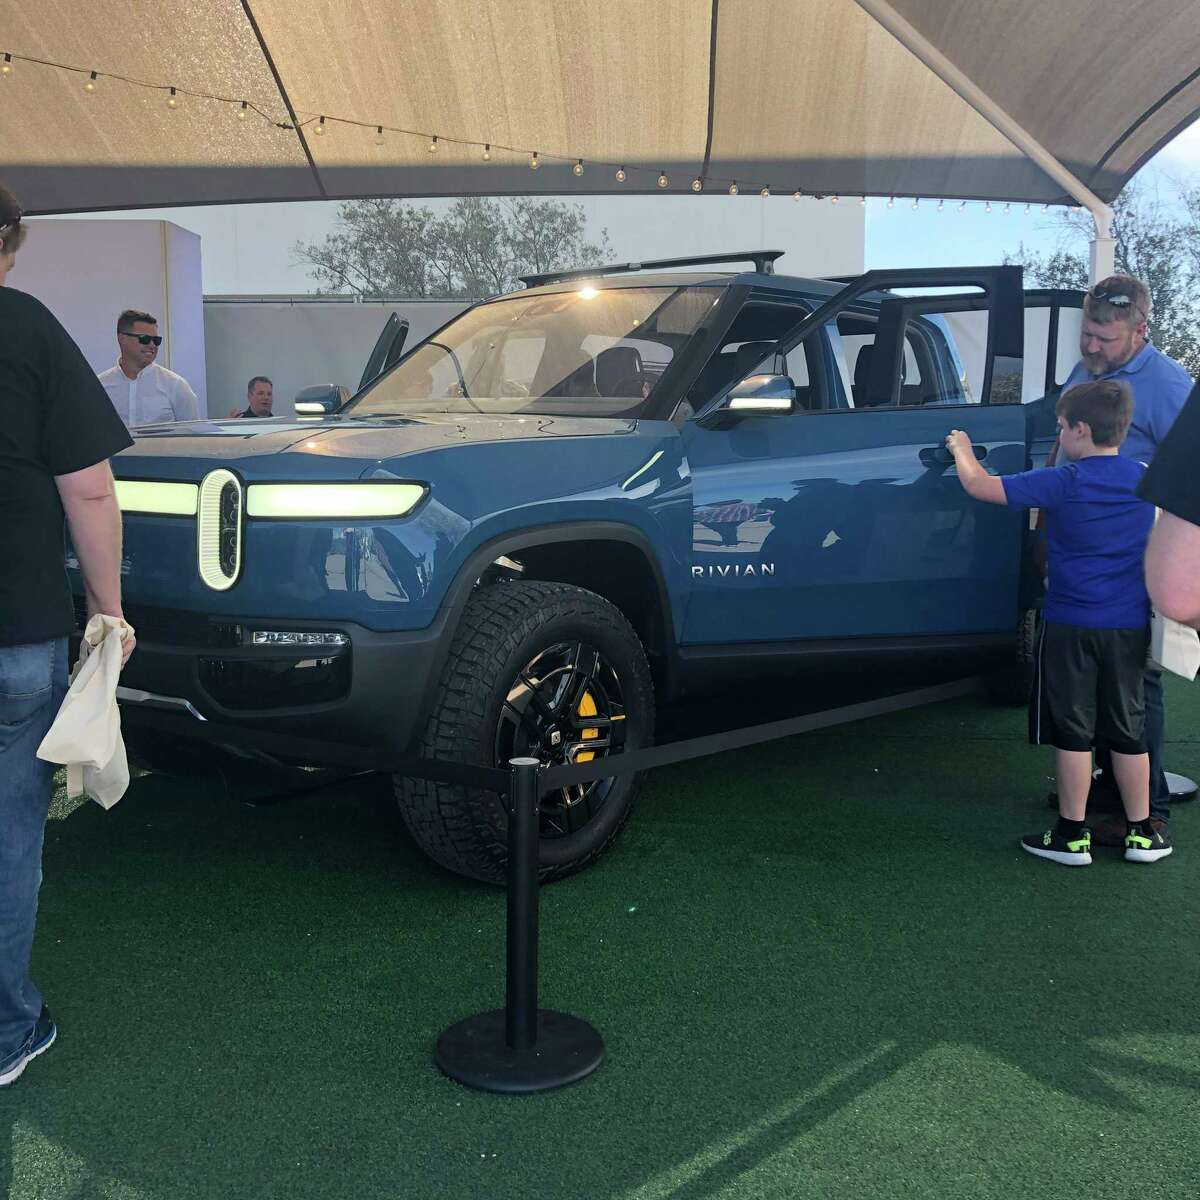 """A new electric vehicle from Rivian, which is producing a pick-up and a SUV, on display at """"Full Throttle LIVE,"""" an electric vehicle event in Austin, Texas."""